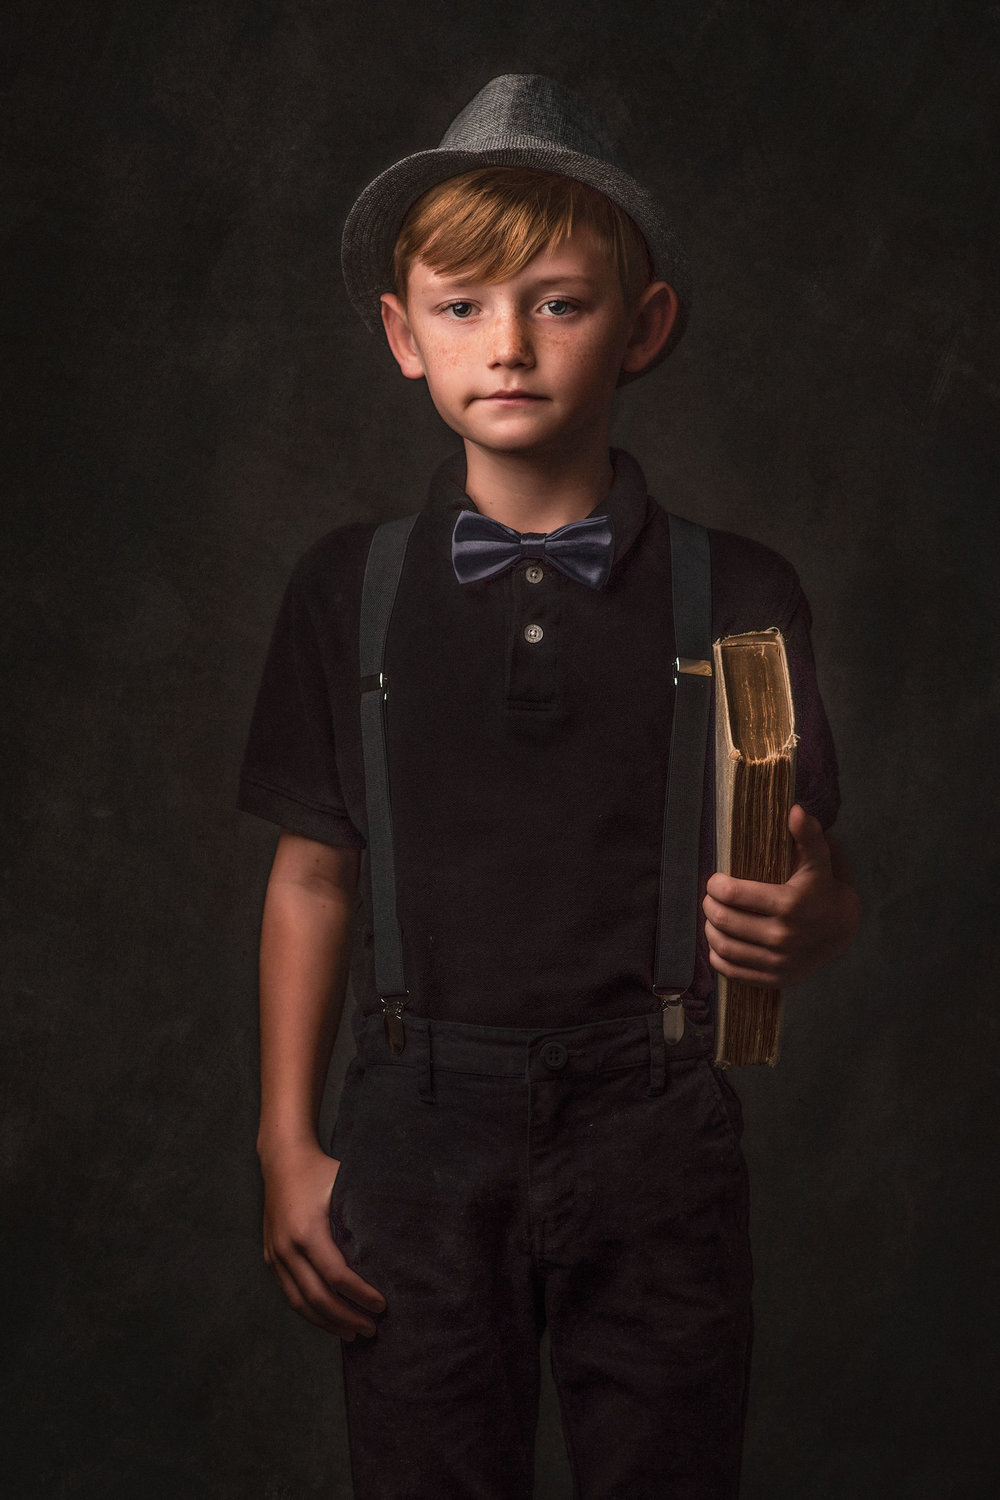 barbara_macferrin_photography_boulder_colorado_80303_fine_art_children_boy_redhead_book_vintage.jpg